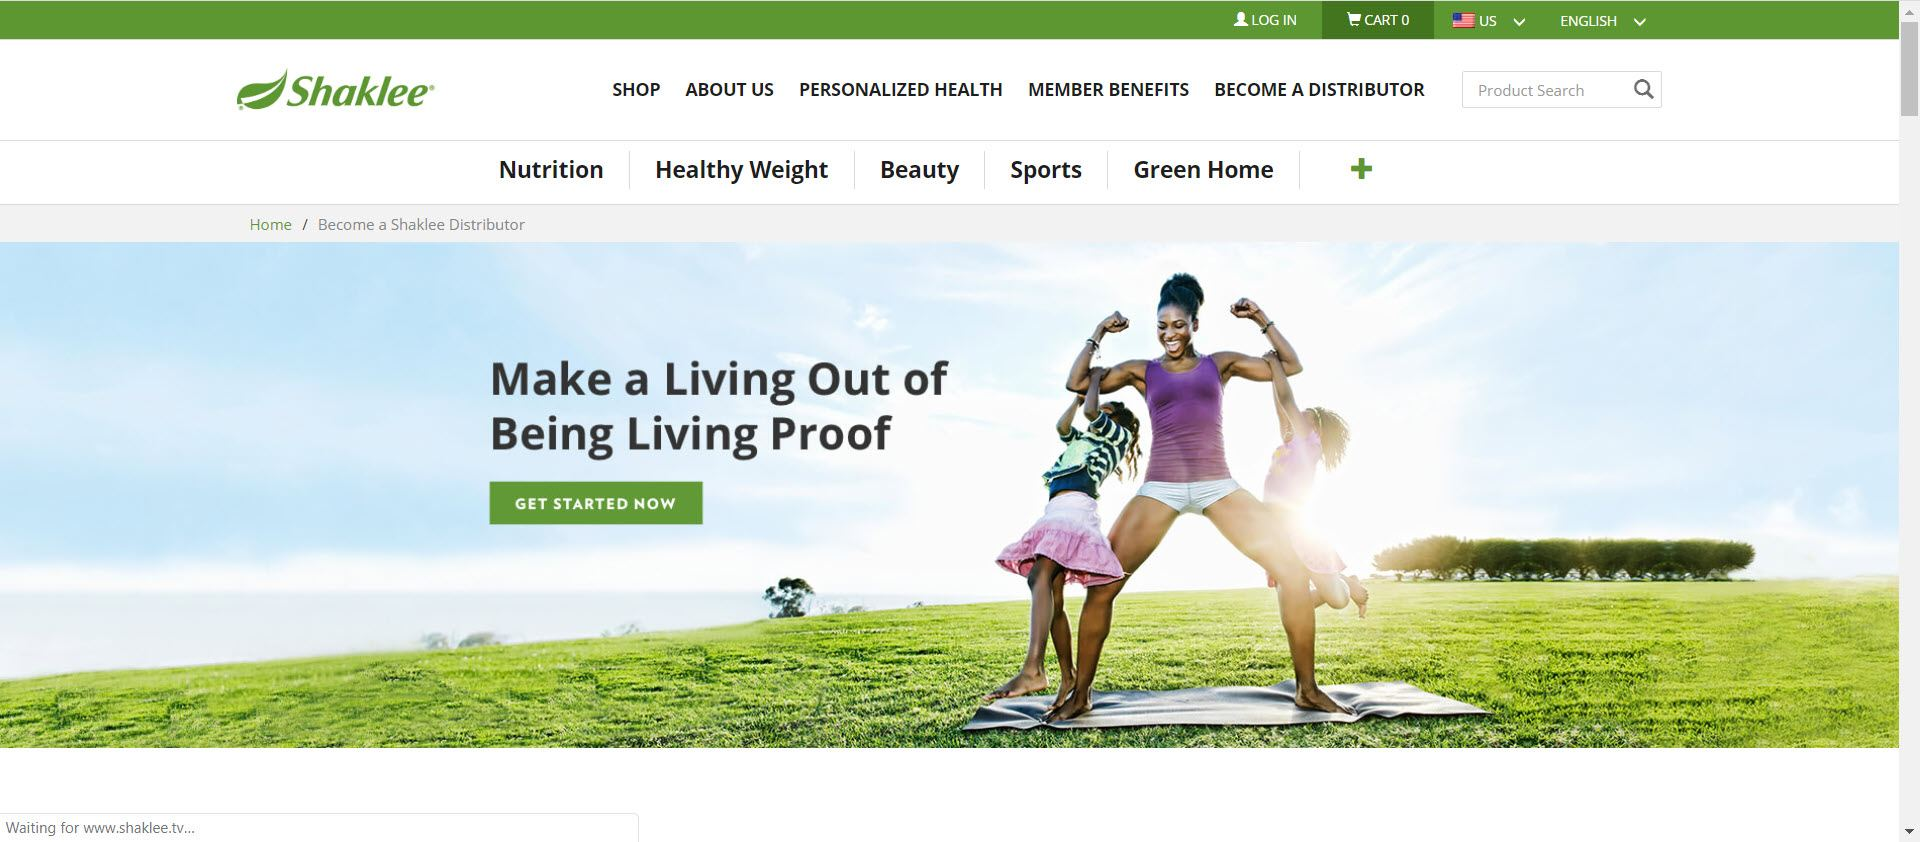 Is Shaklee an MLM - opportunity page